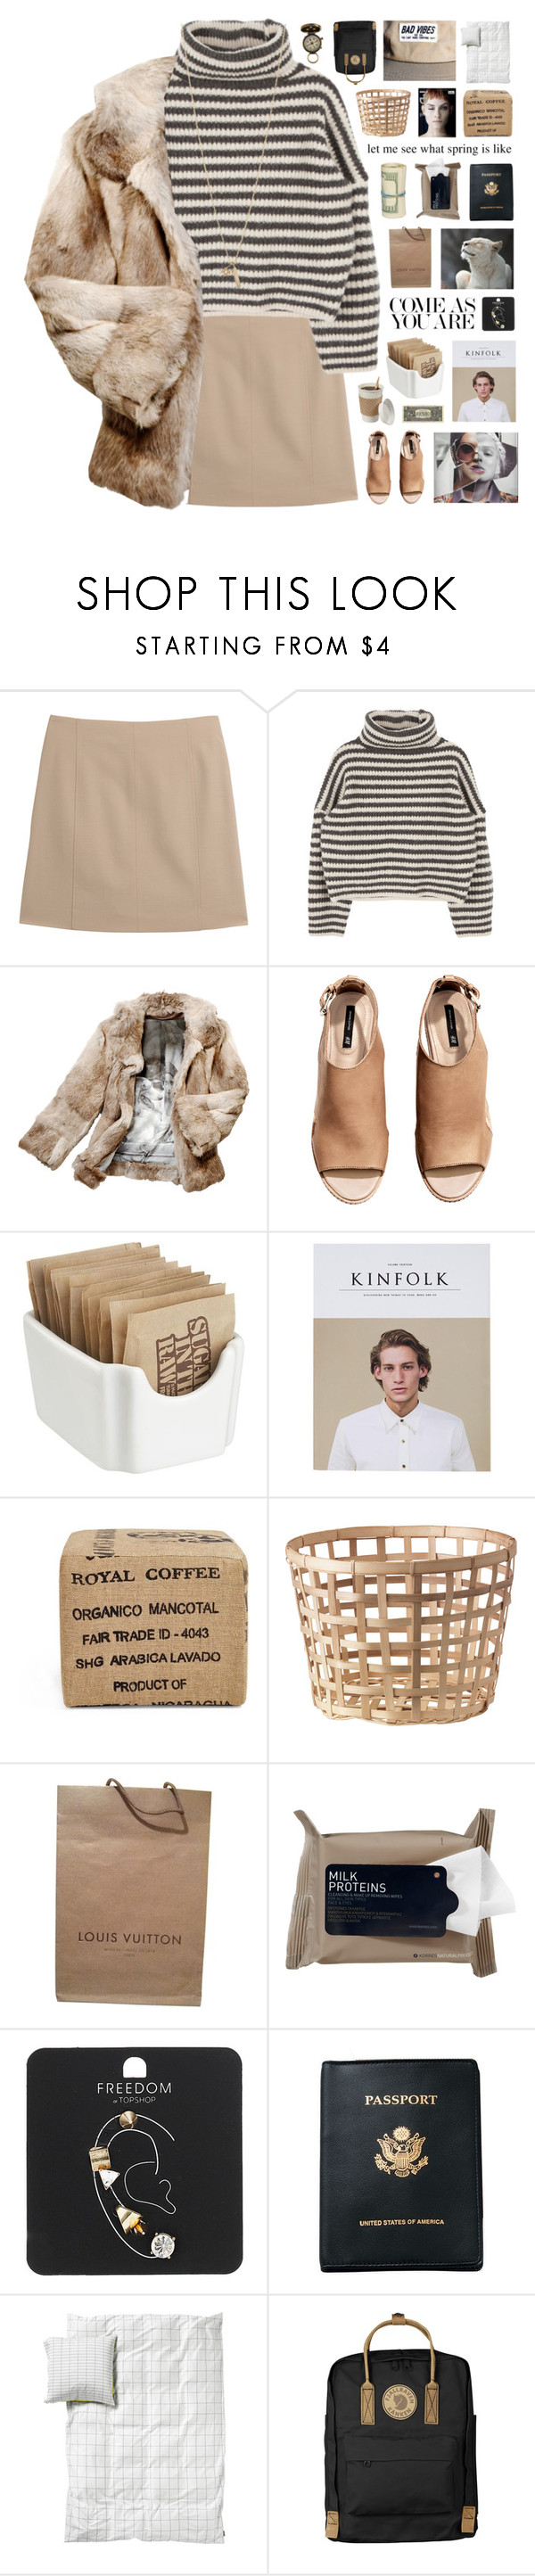 """Chişinău // tag"" by nanarachel ❤ liked on Polyvore featuring Maison Margiela, Anya Hindmarch, Kenzie, H&M, Crate and Barrel, Gus* Modern, Louis Vuitton, Korres, Topshop and Royce Leather"